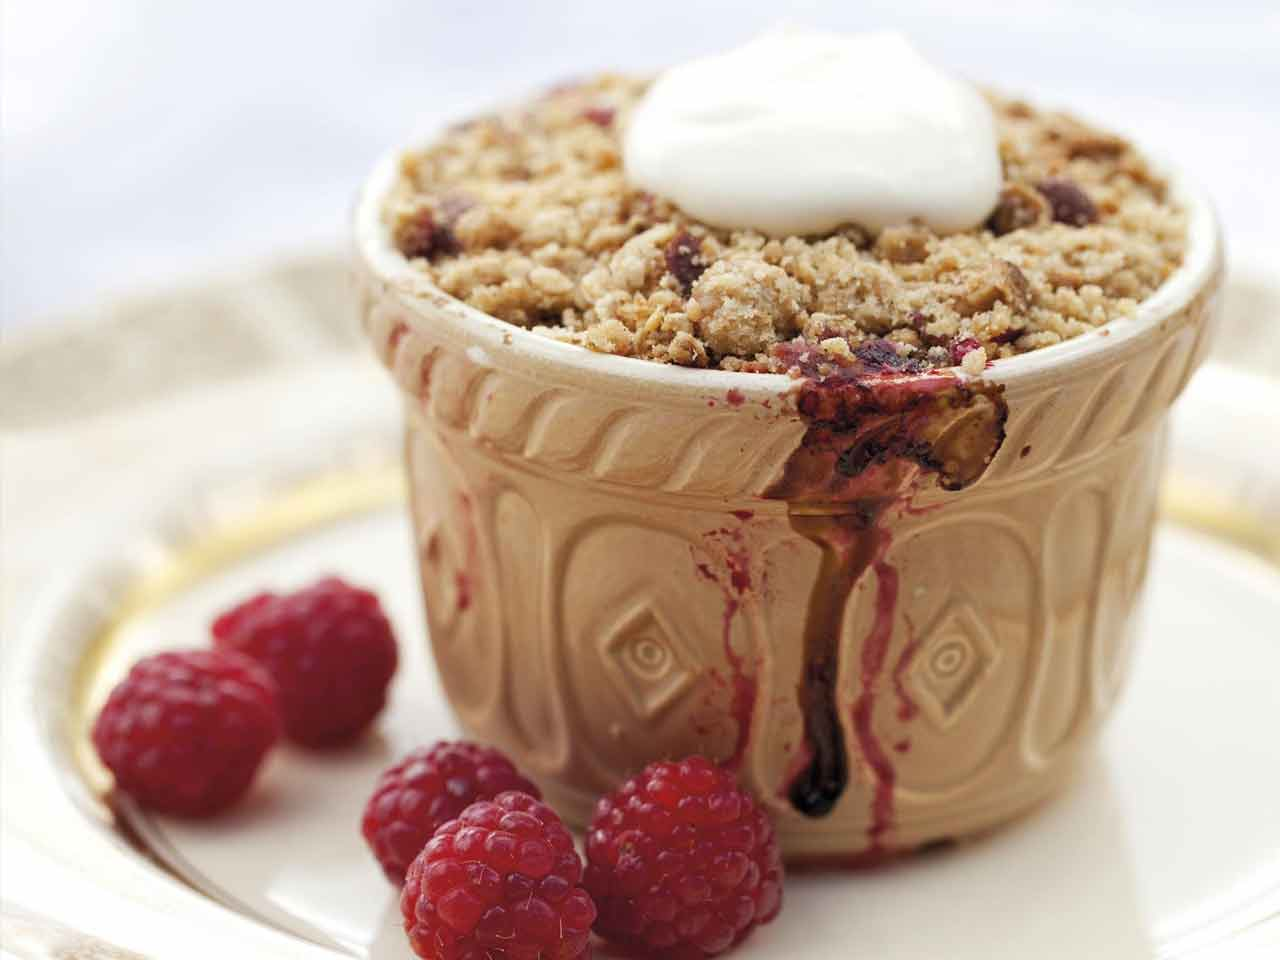 Annabel Langbein's rhubarb and berry crumble